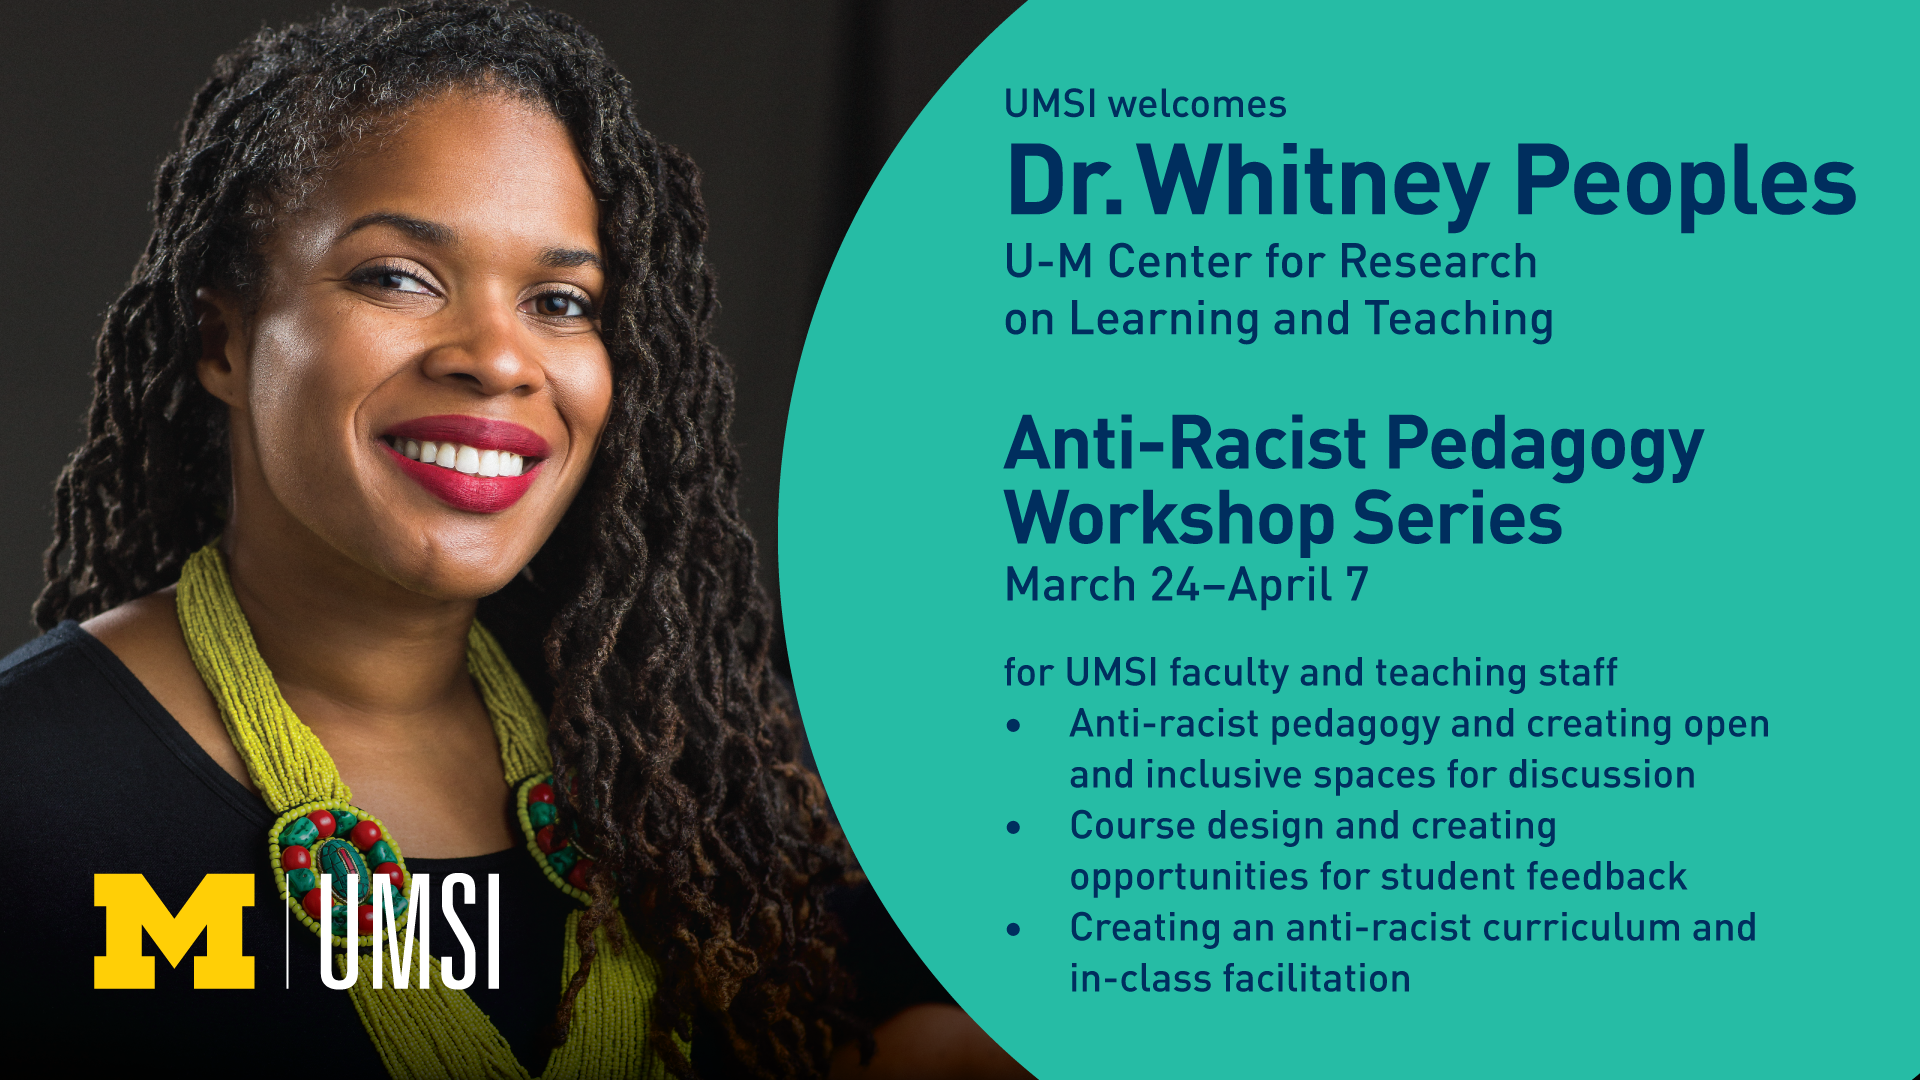 UMSI welcomes Dr.Whitney Peoples from U-Ms Center for Research on Learning and Teaching to provide an Anti-Racist Pedagogy Workshop Series. This series will be held from March 24th to April 7th. This series is only for UMSI faculty and teaching staff. The three part series covers: anti-racist pedagogy and creating open and inclusive spaces for discussion, course design and creating opportunities for student feedback, Creating an anti-racist curriculum and in-class facilitation..